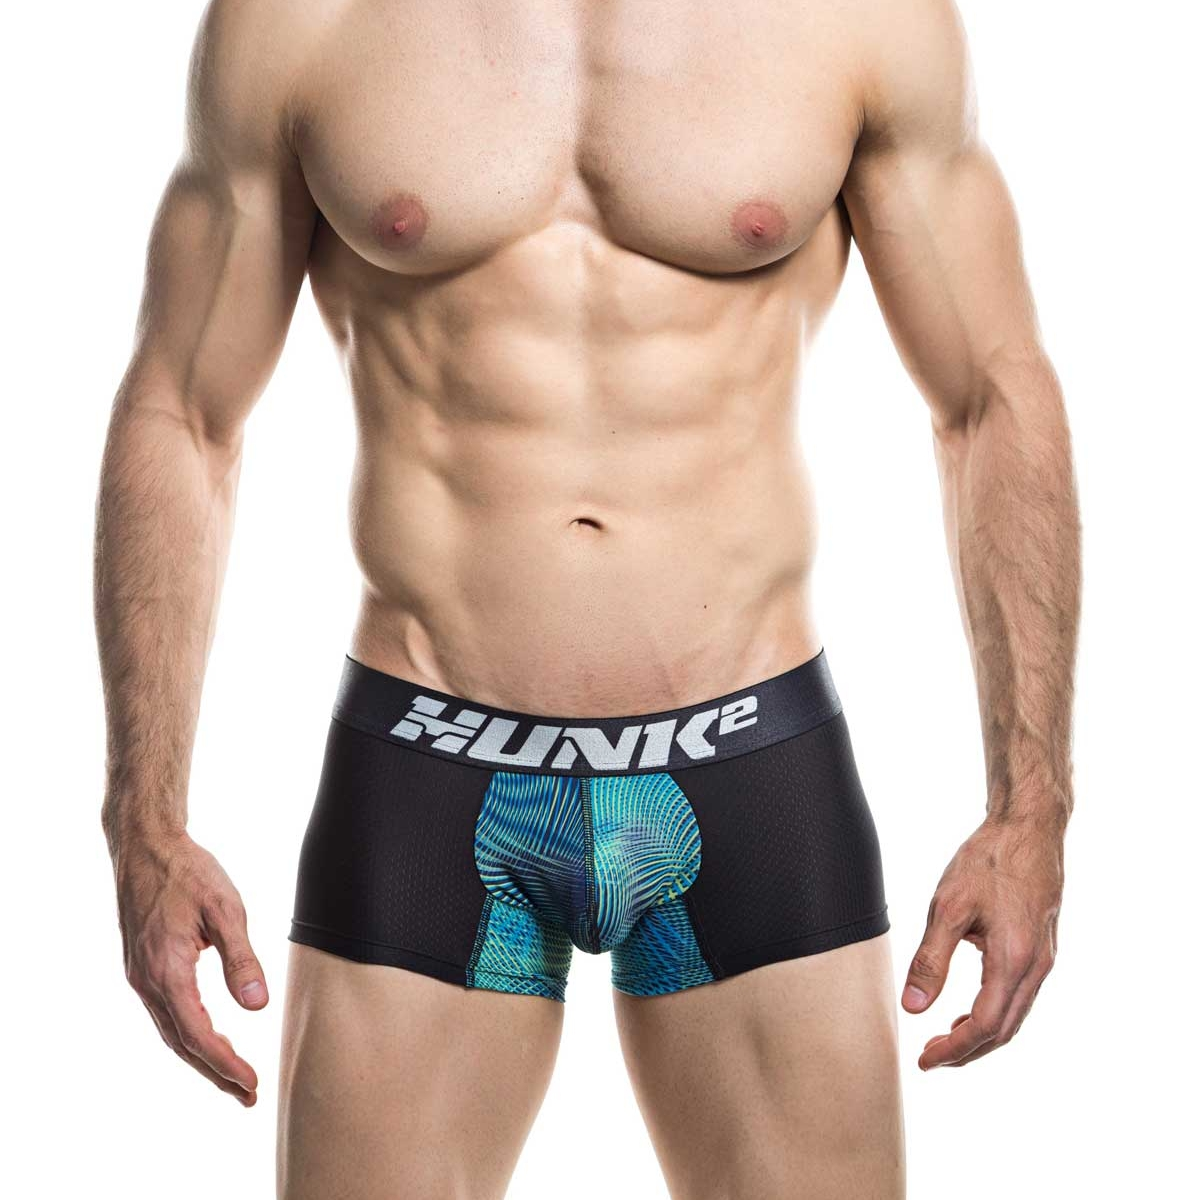 HUNK2-Boxers-HombreAlphae-Espace-0